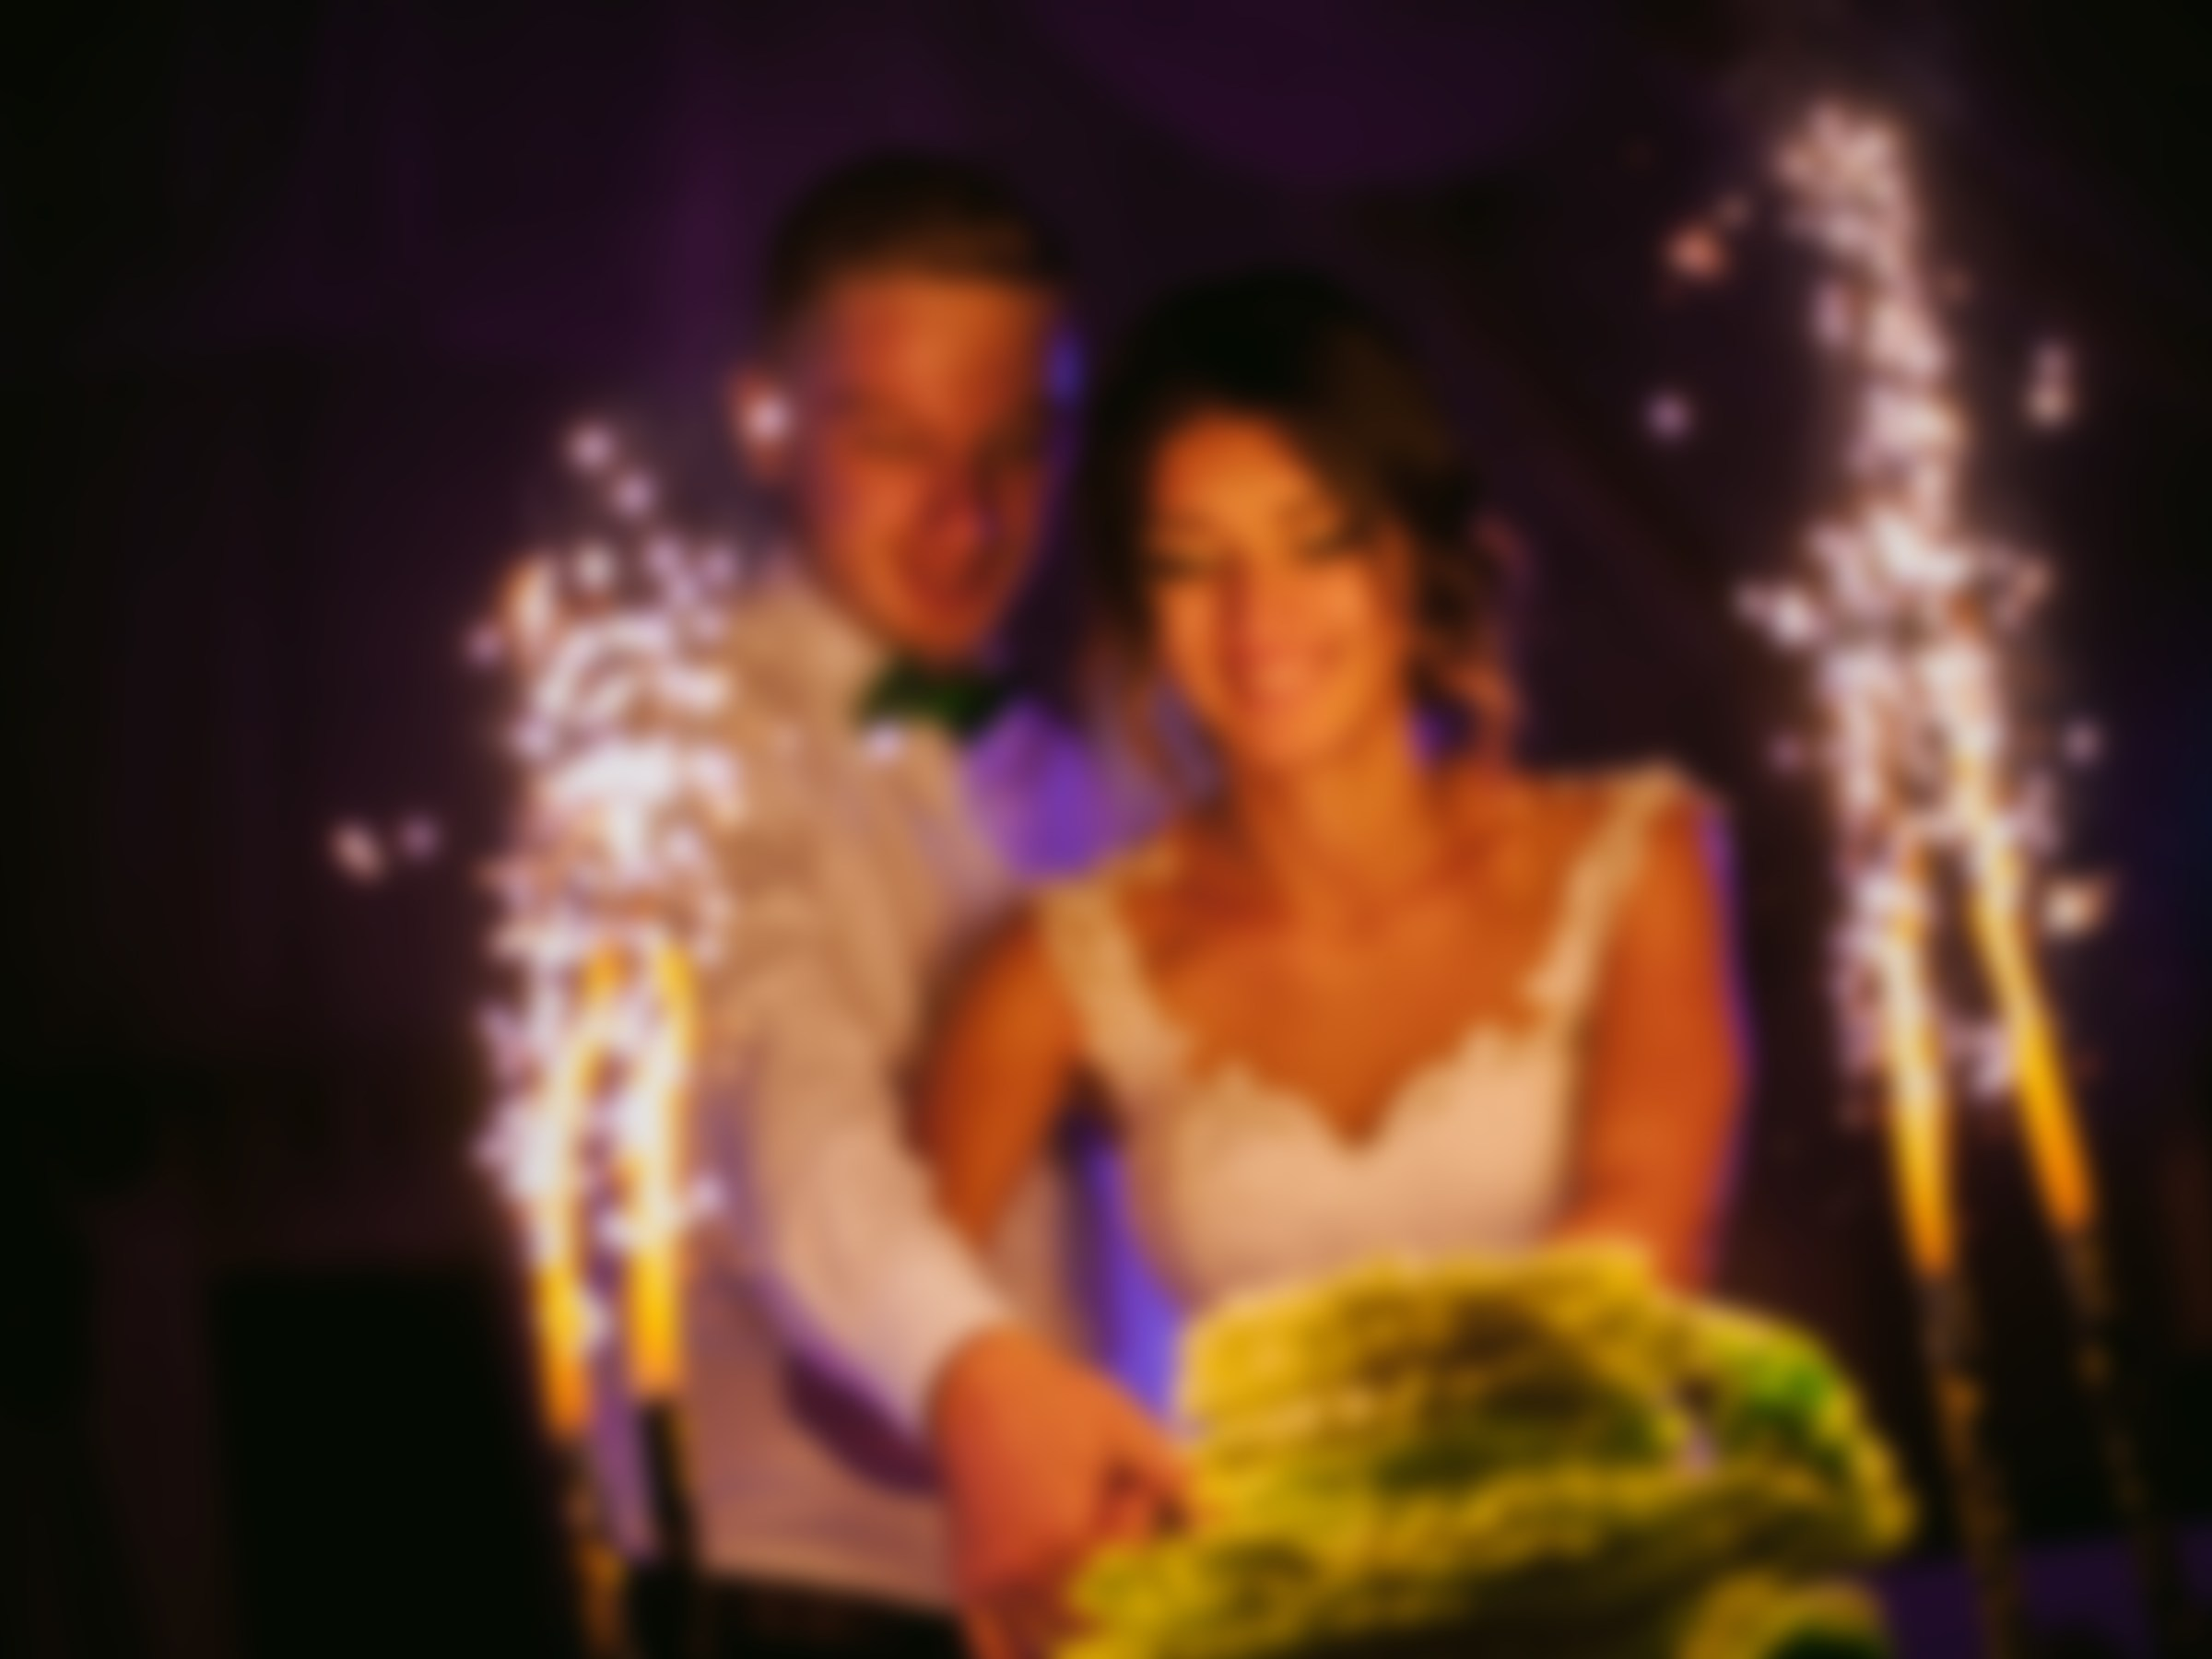 Blurred Wedding Photo